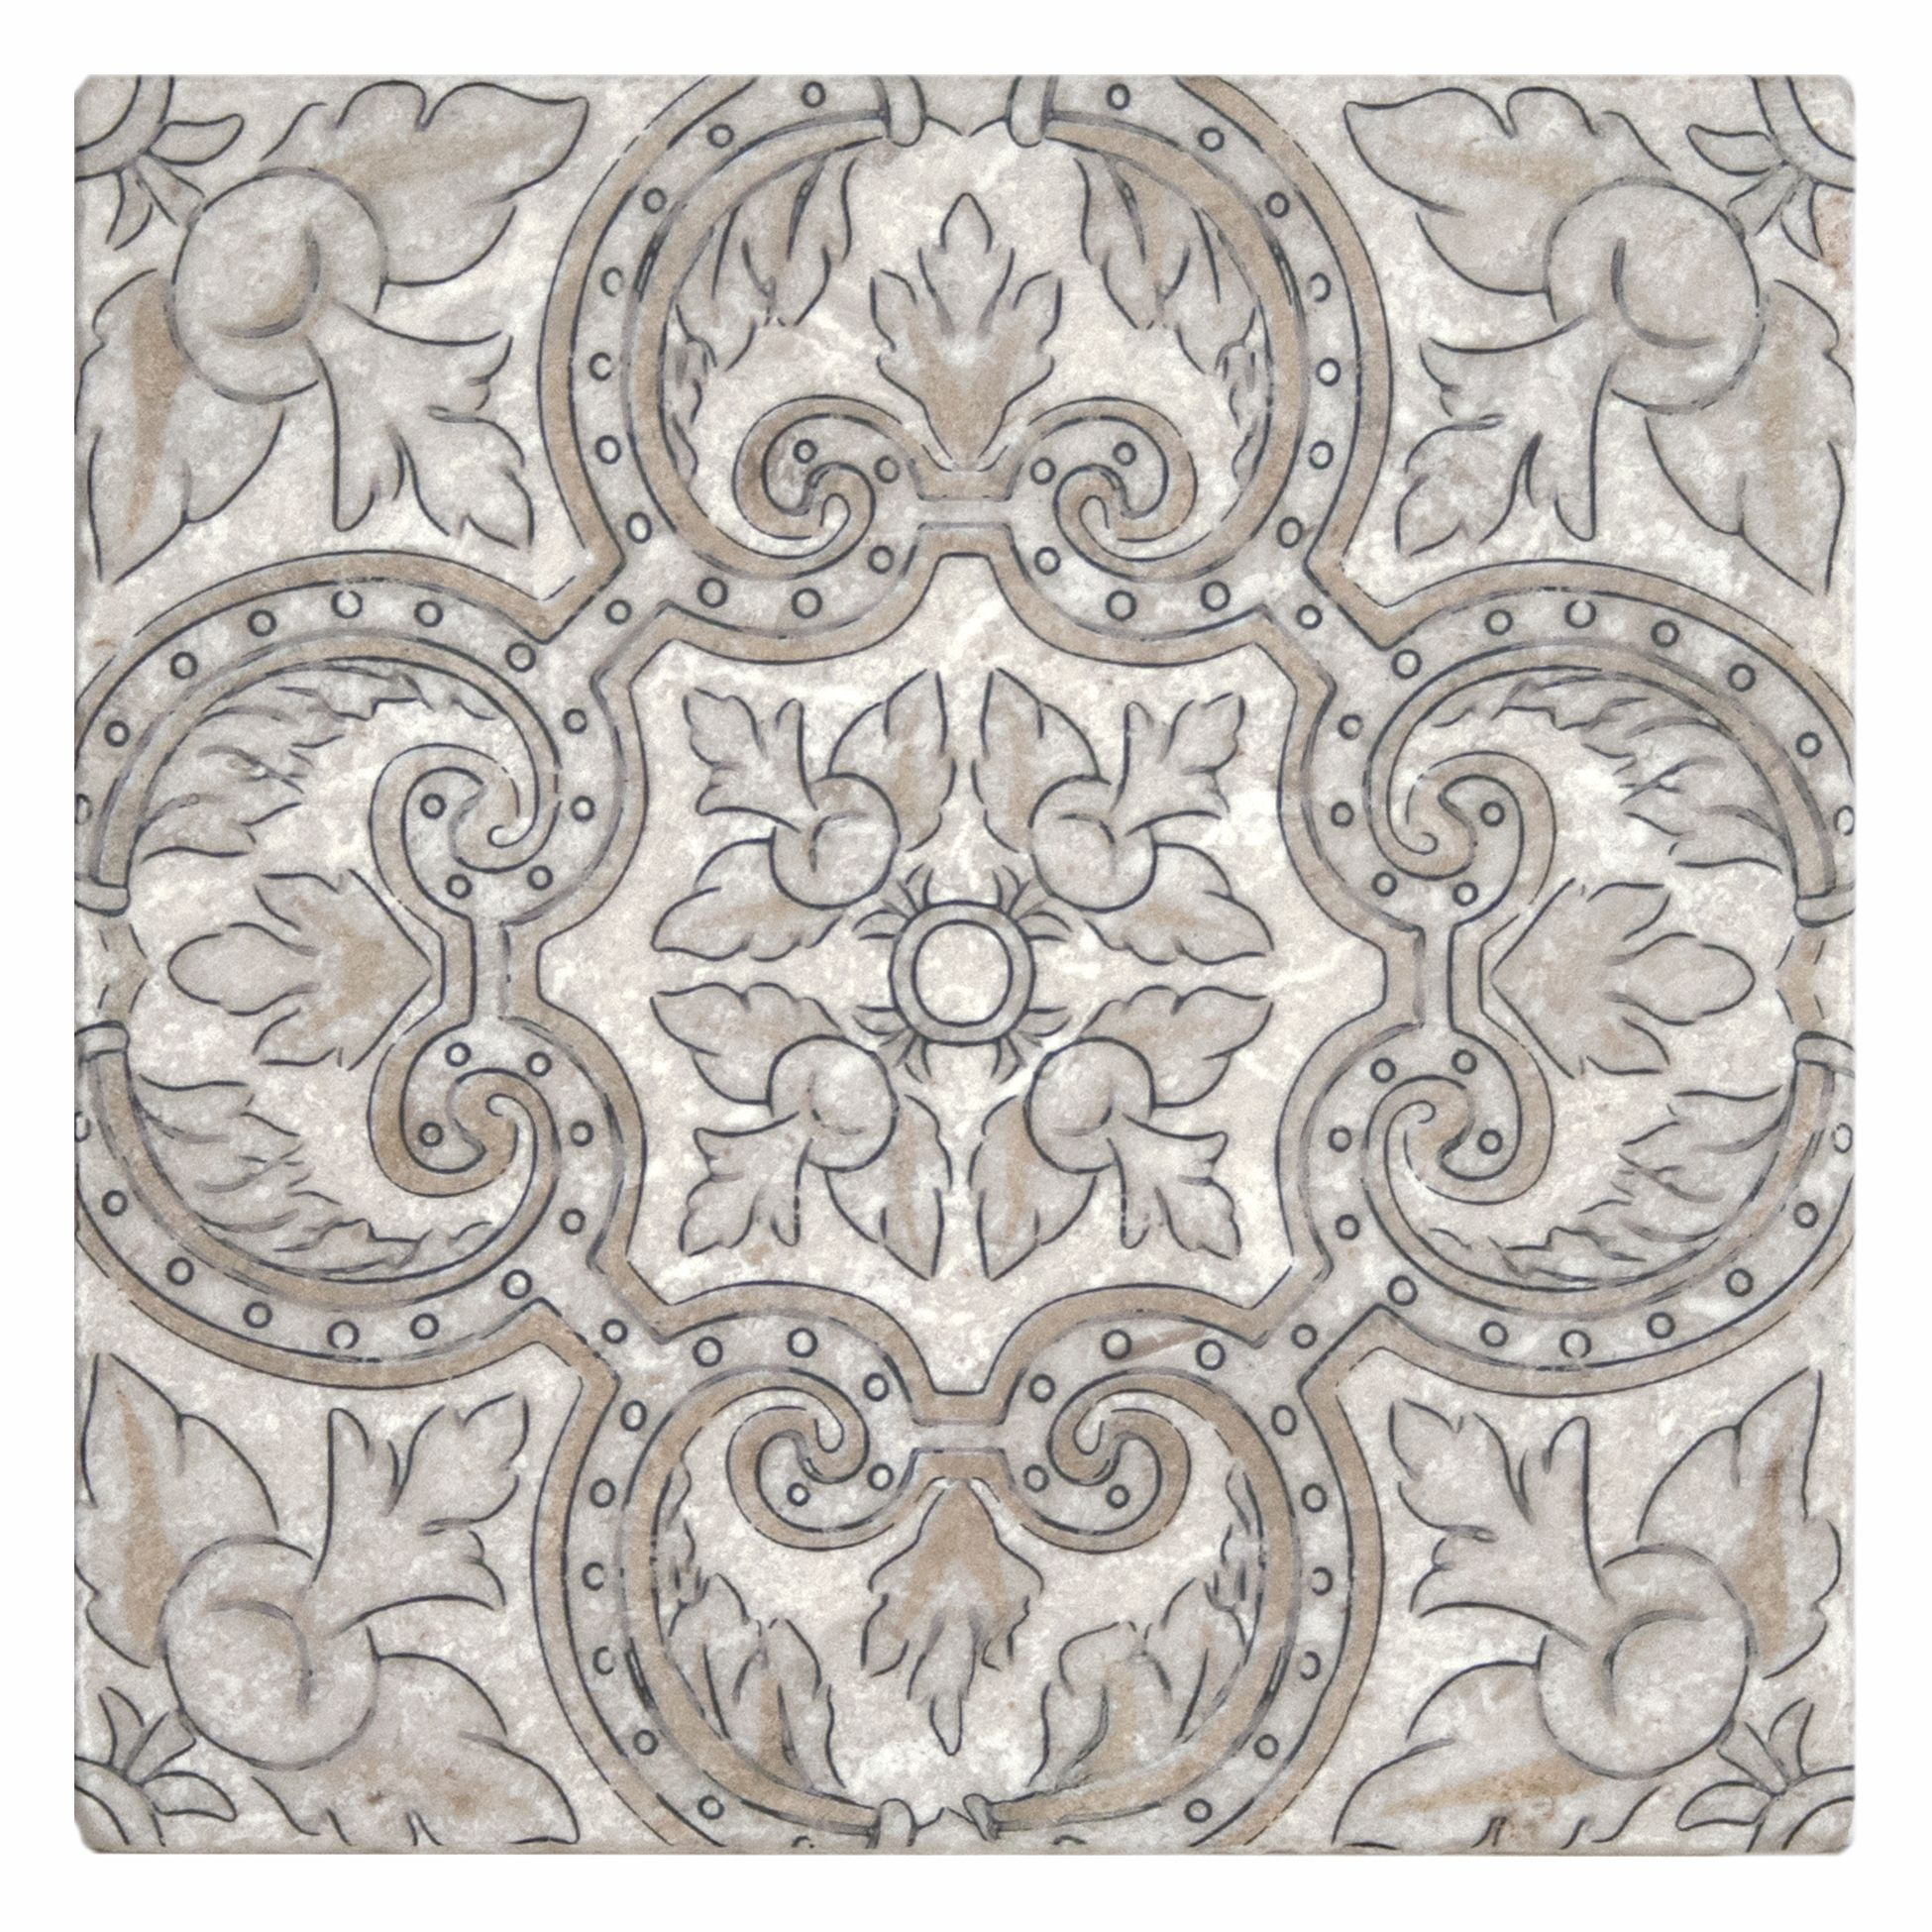 Unique Accent Tiles Ranging From Rustic To Modern Pattern Available - 6x6 accent tiles